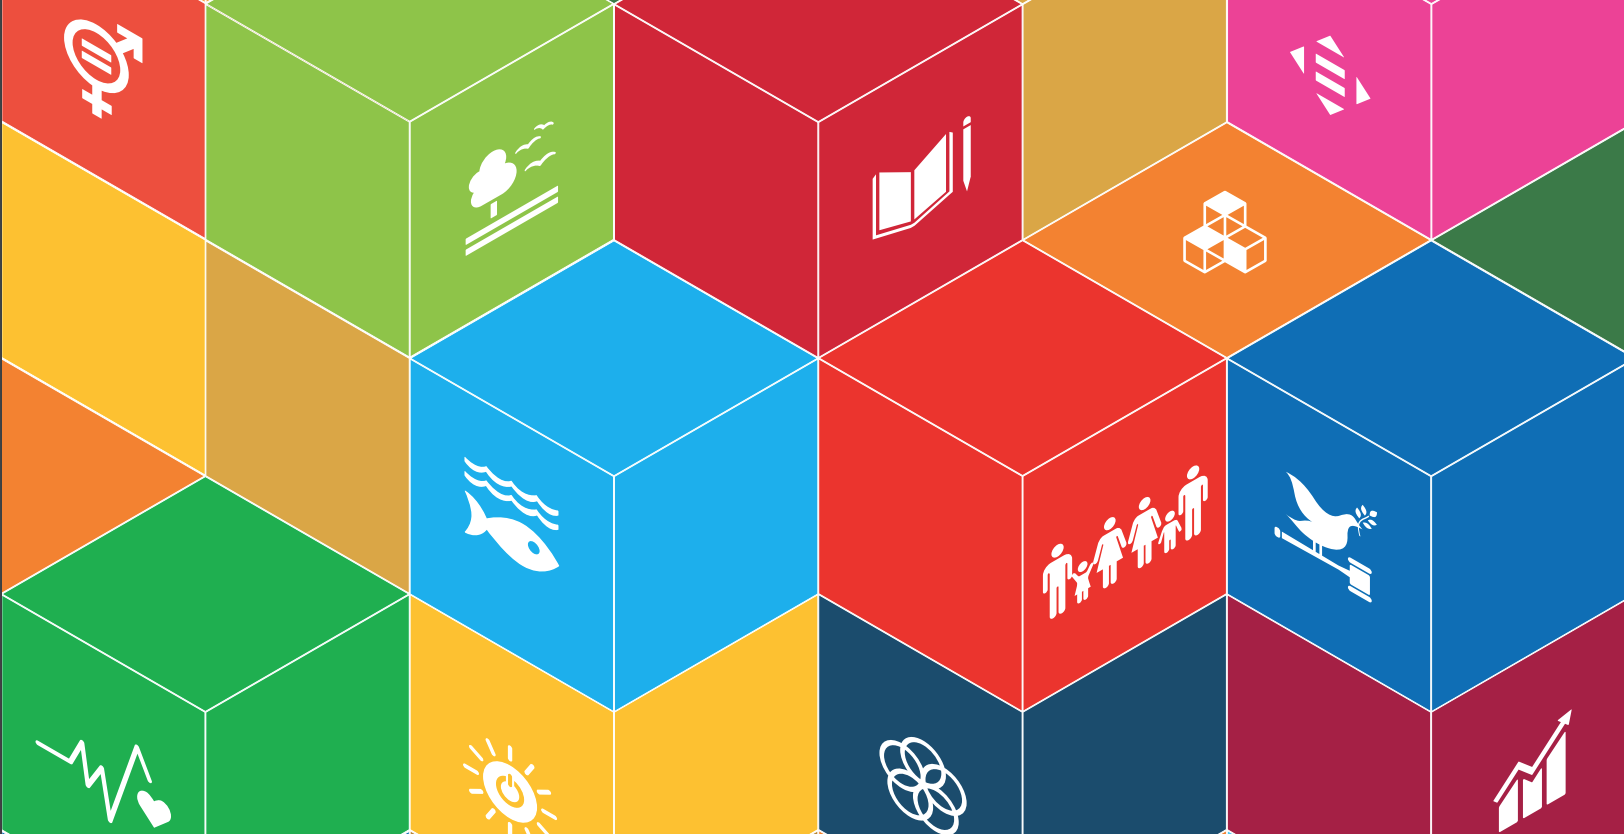 The SDG wheel with all 17 SDG colours represented